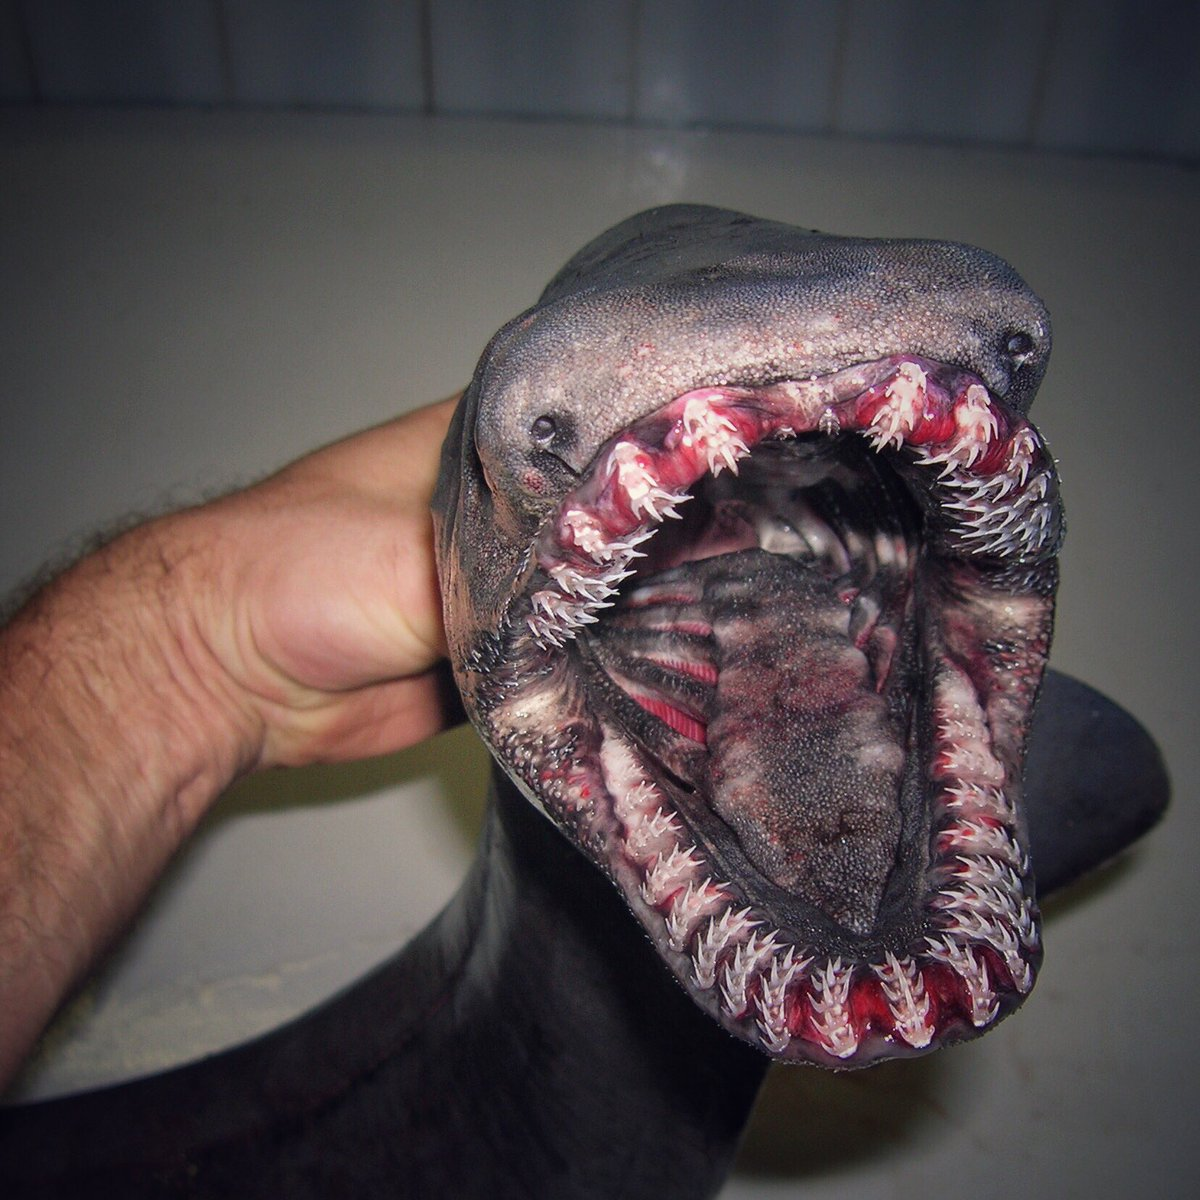 Don't hate on deep-sea critters. They've got to be weird to survive.